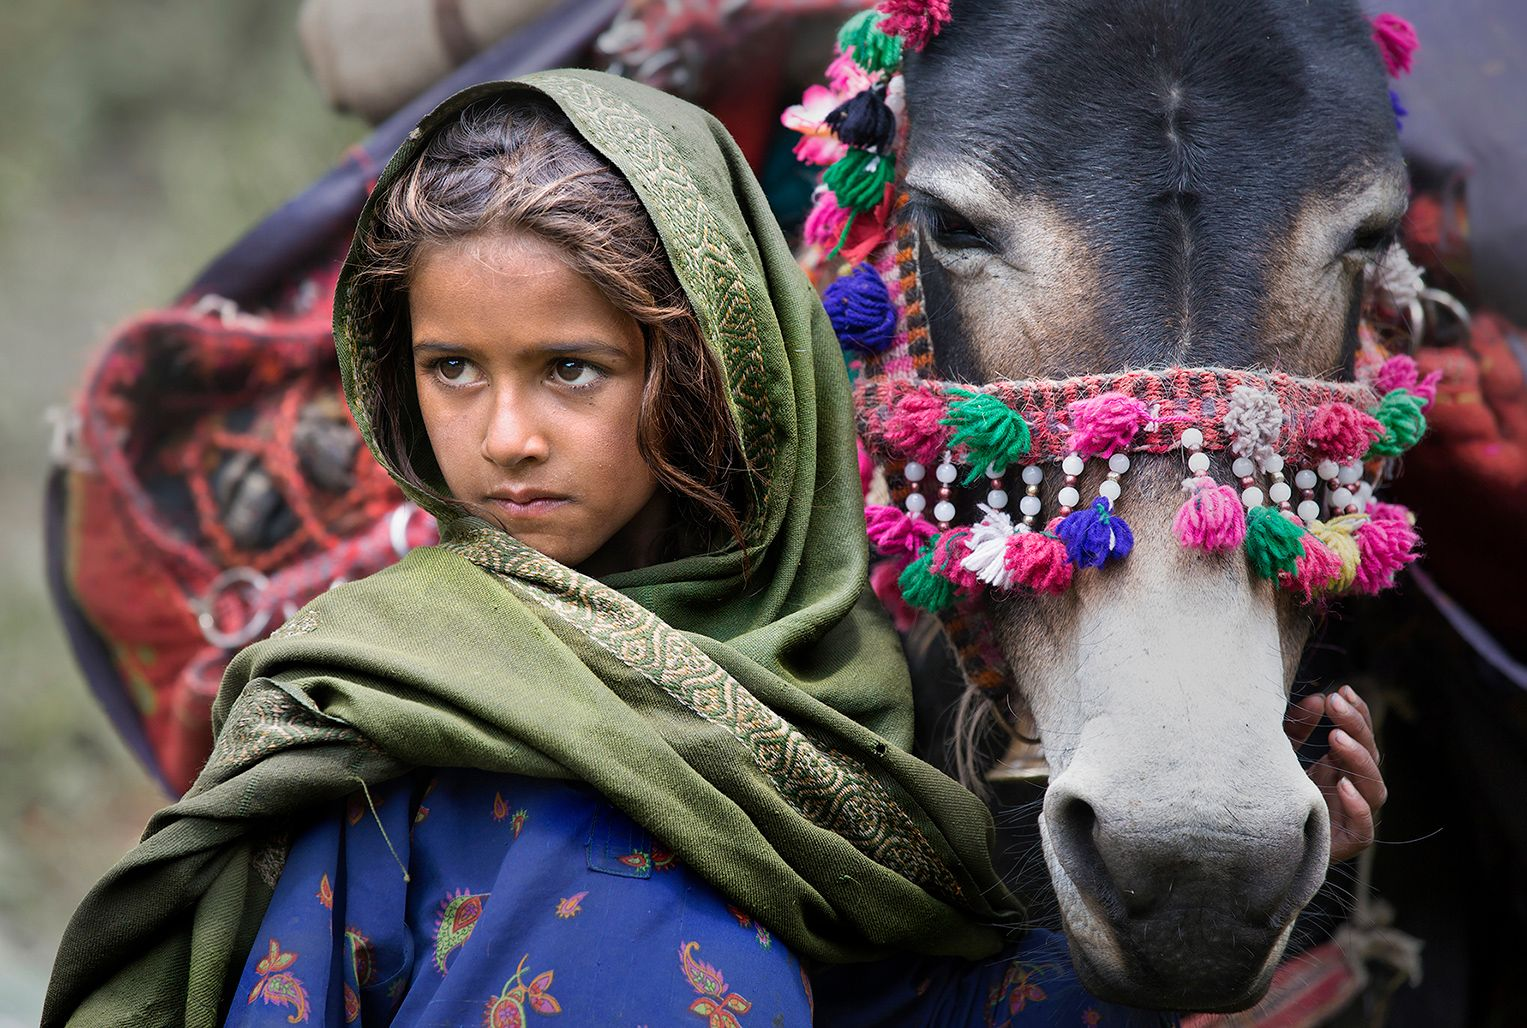 The girl from Kashmir